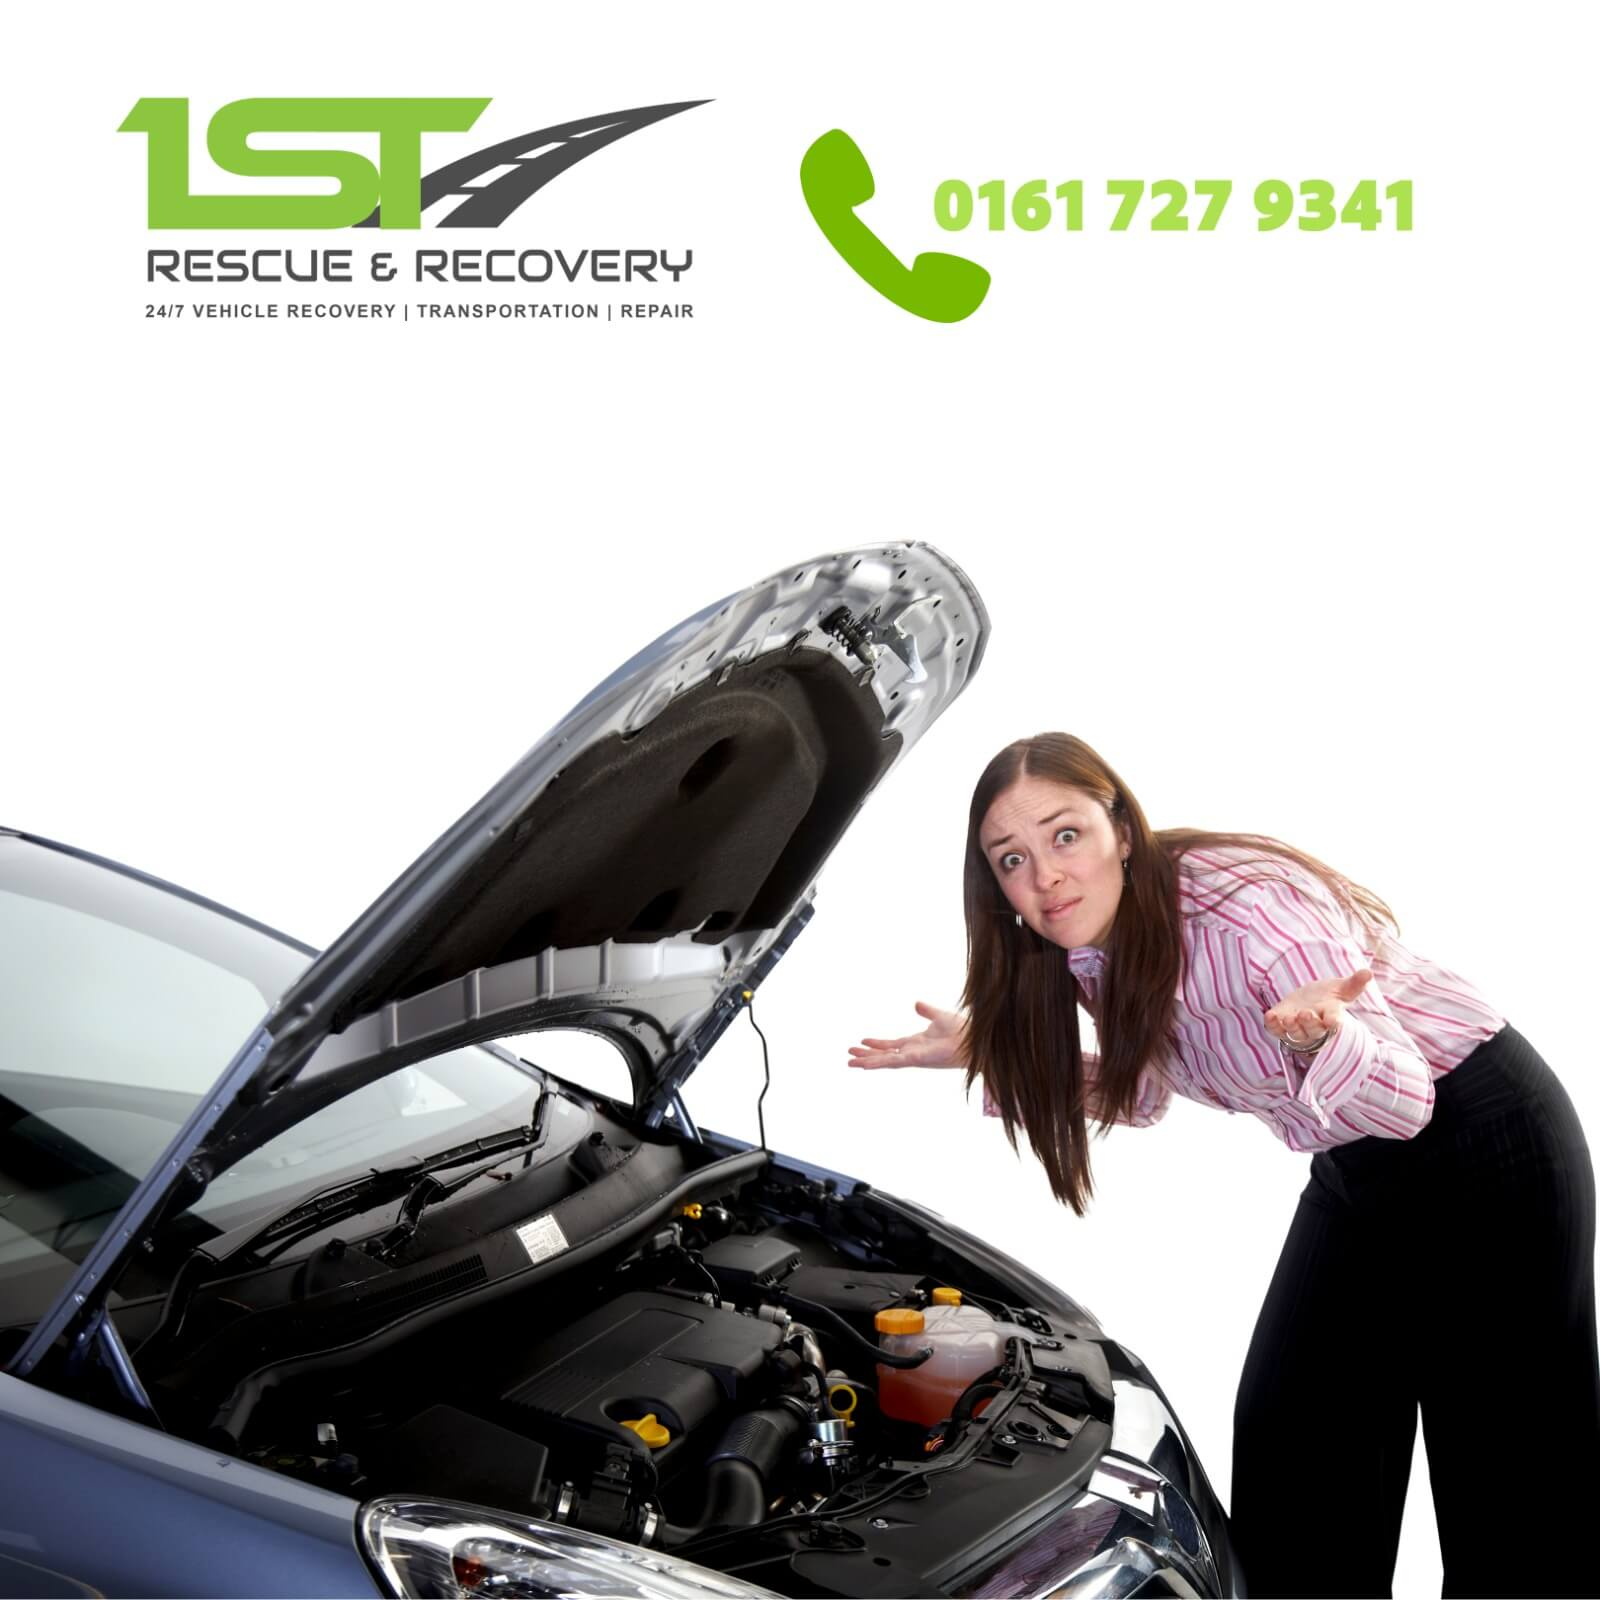 24 hour emergency Manchester breakdown recovery